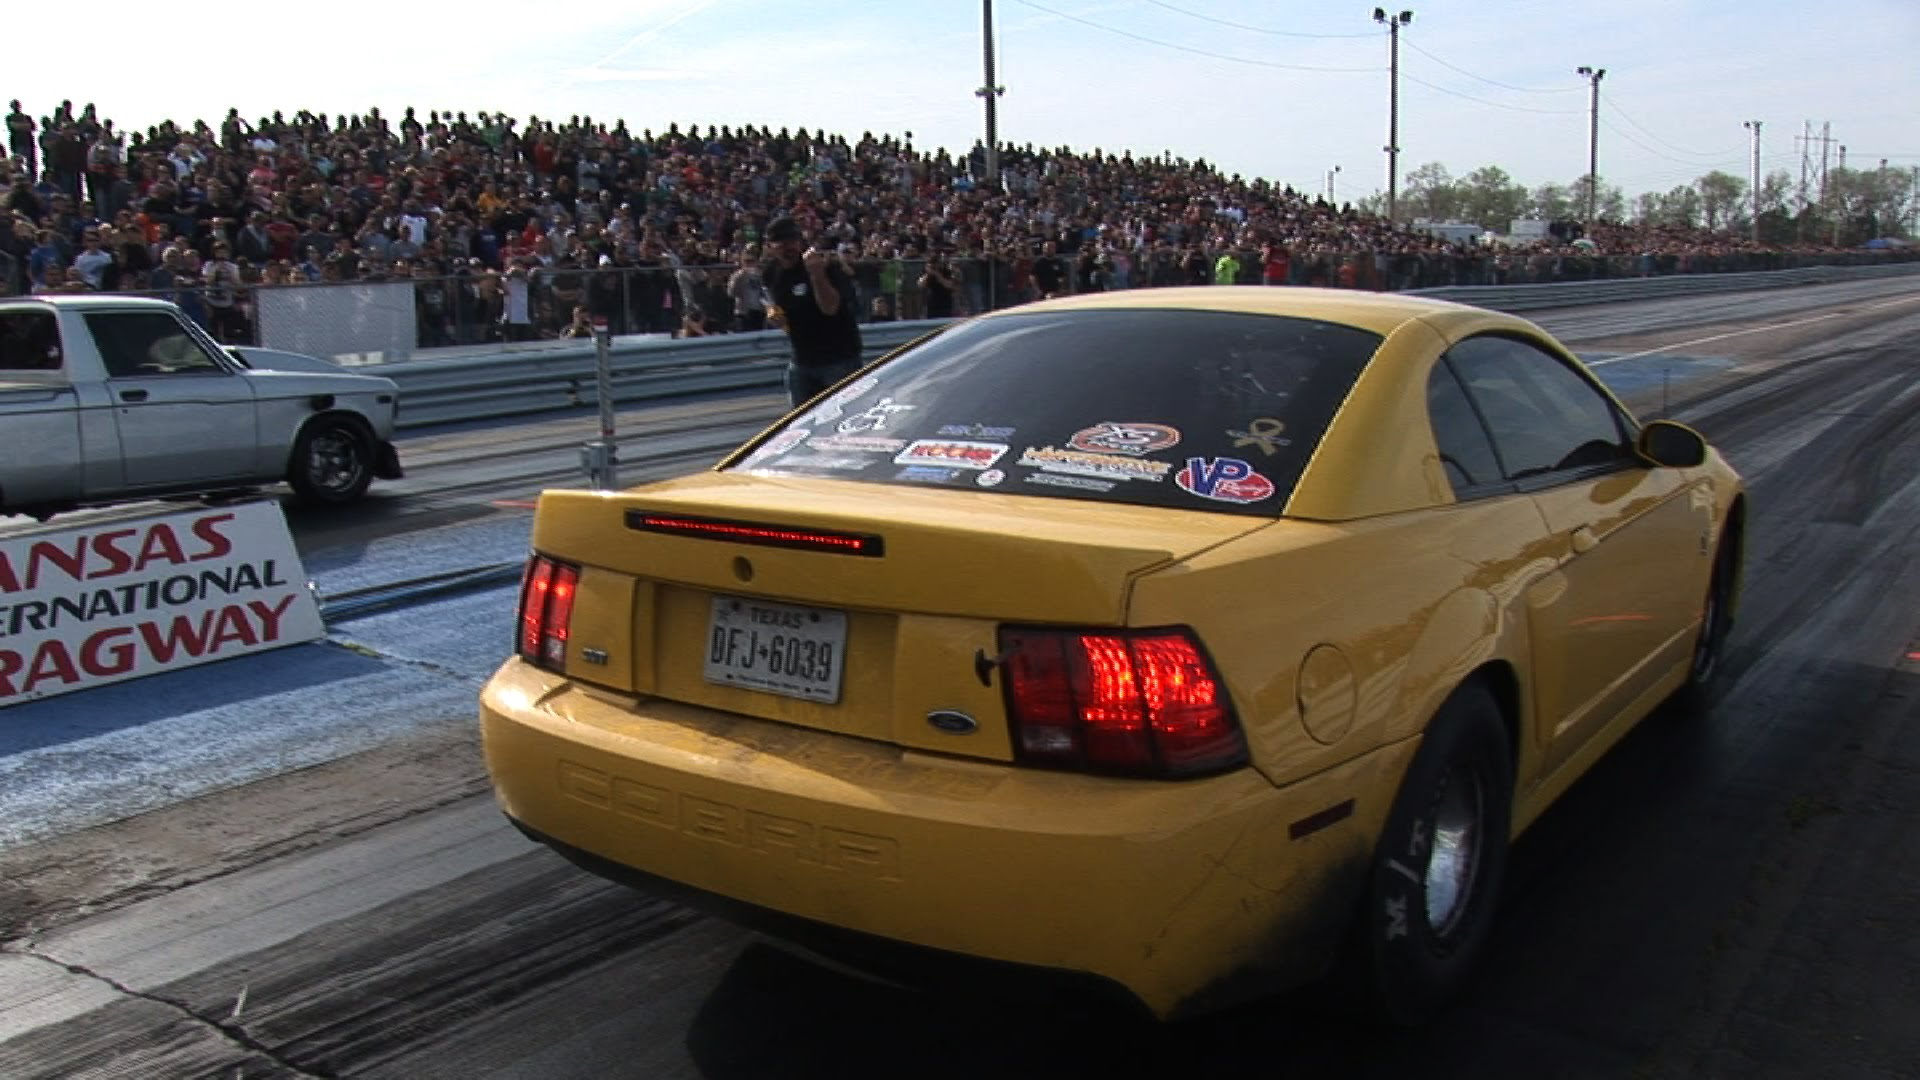 Witness The Highlights From Small Tire No Prep Racing @ Kansas International Driveway